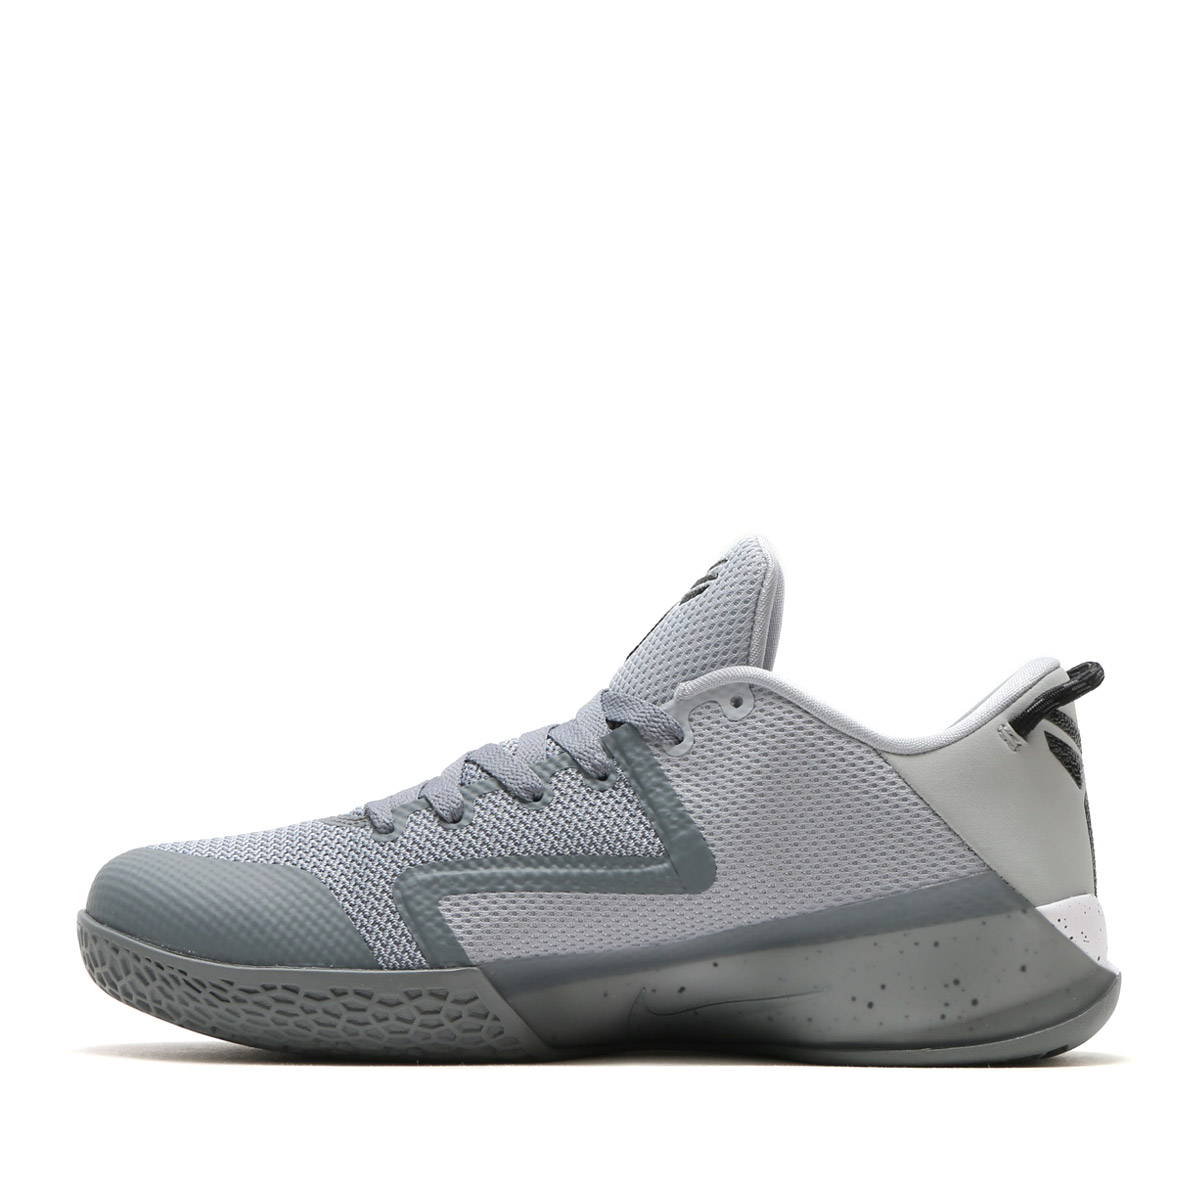 Check Out the Nike Kobe Venomenon 6 in 'Cool Grey' WearTesters